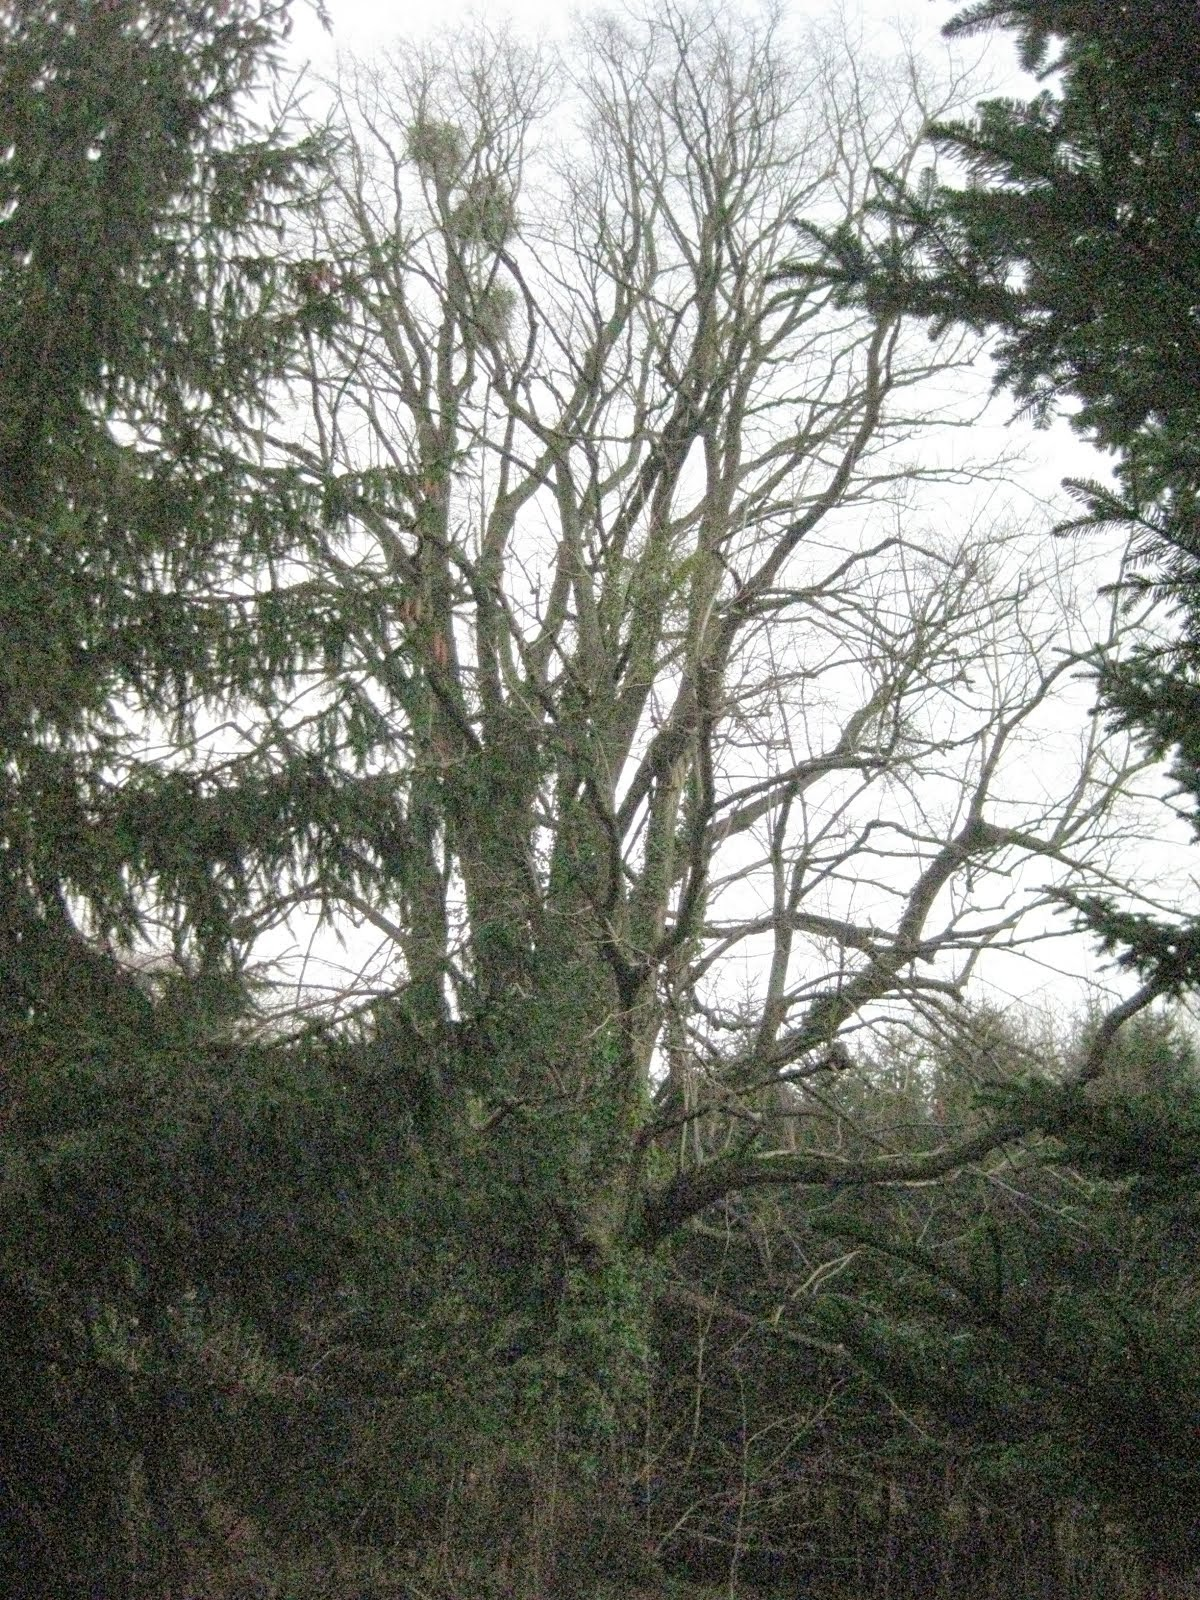 The towering lime tree, with its mistletoe